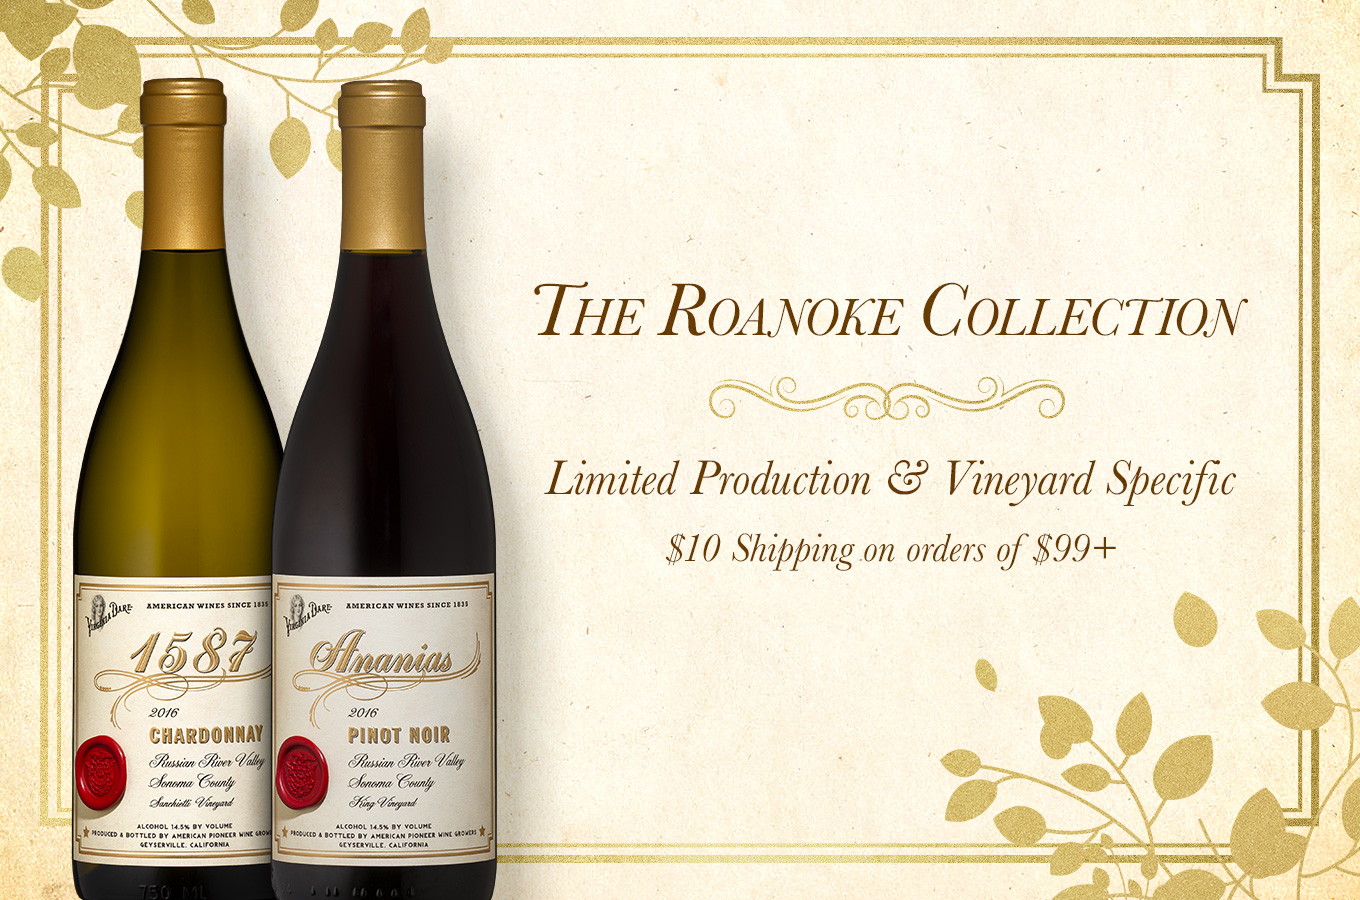 The Roanoke Collection. Limited Production & Vineyard Specific. $10 Shipping on orders of $99+